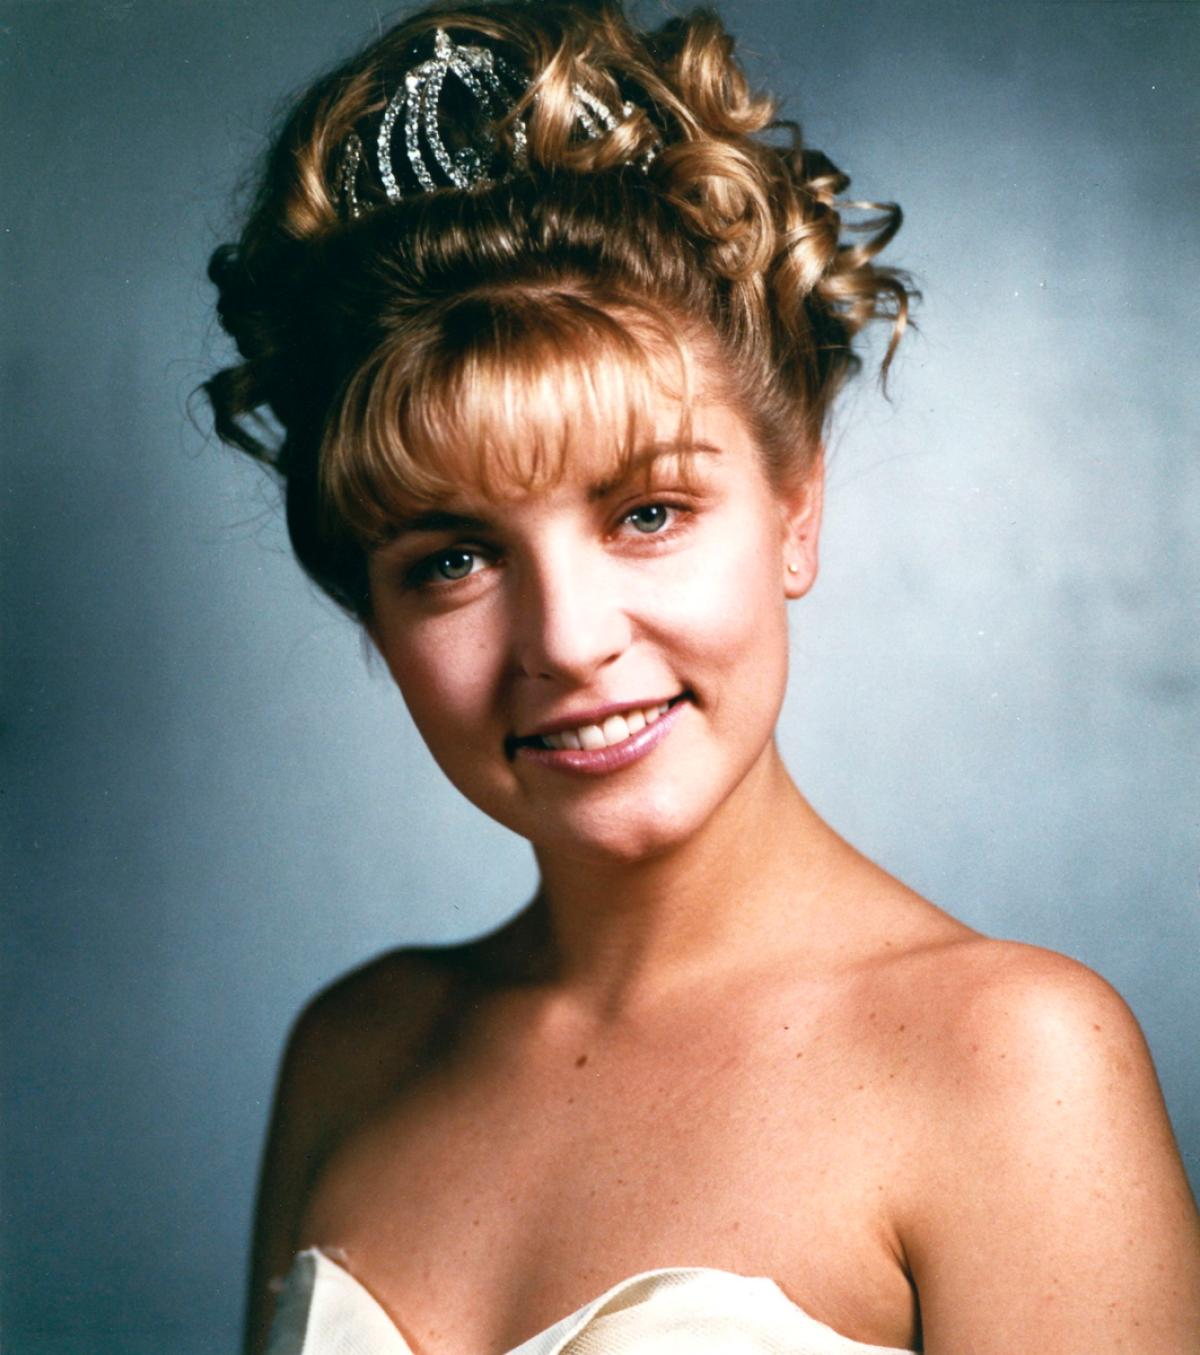 Fichier:Laura Palmer, the Queen Of Hearts.jpg